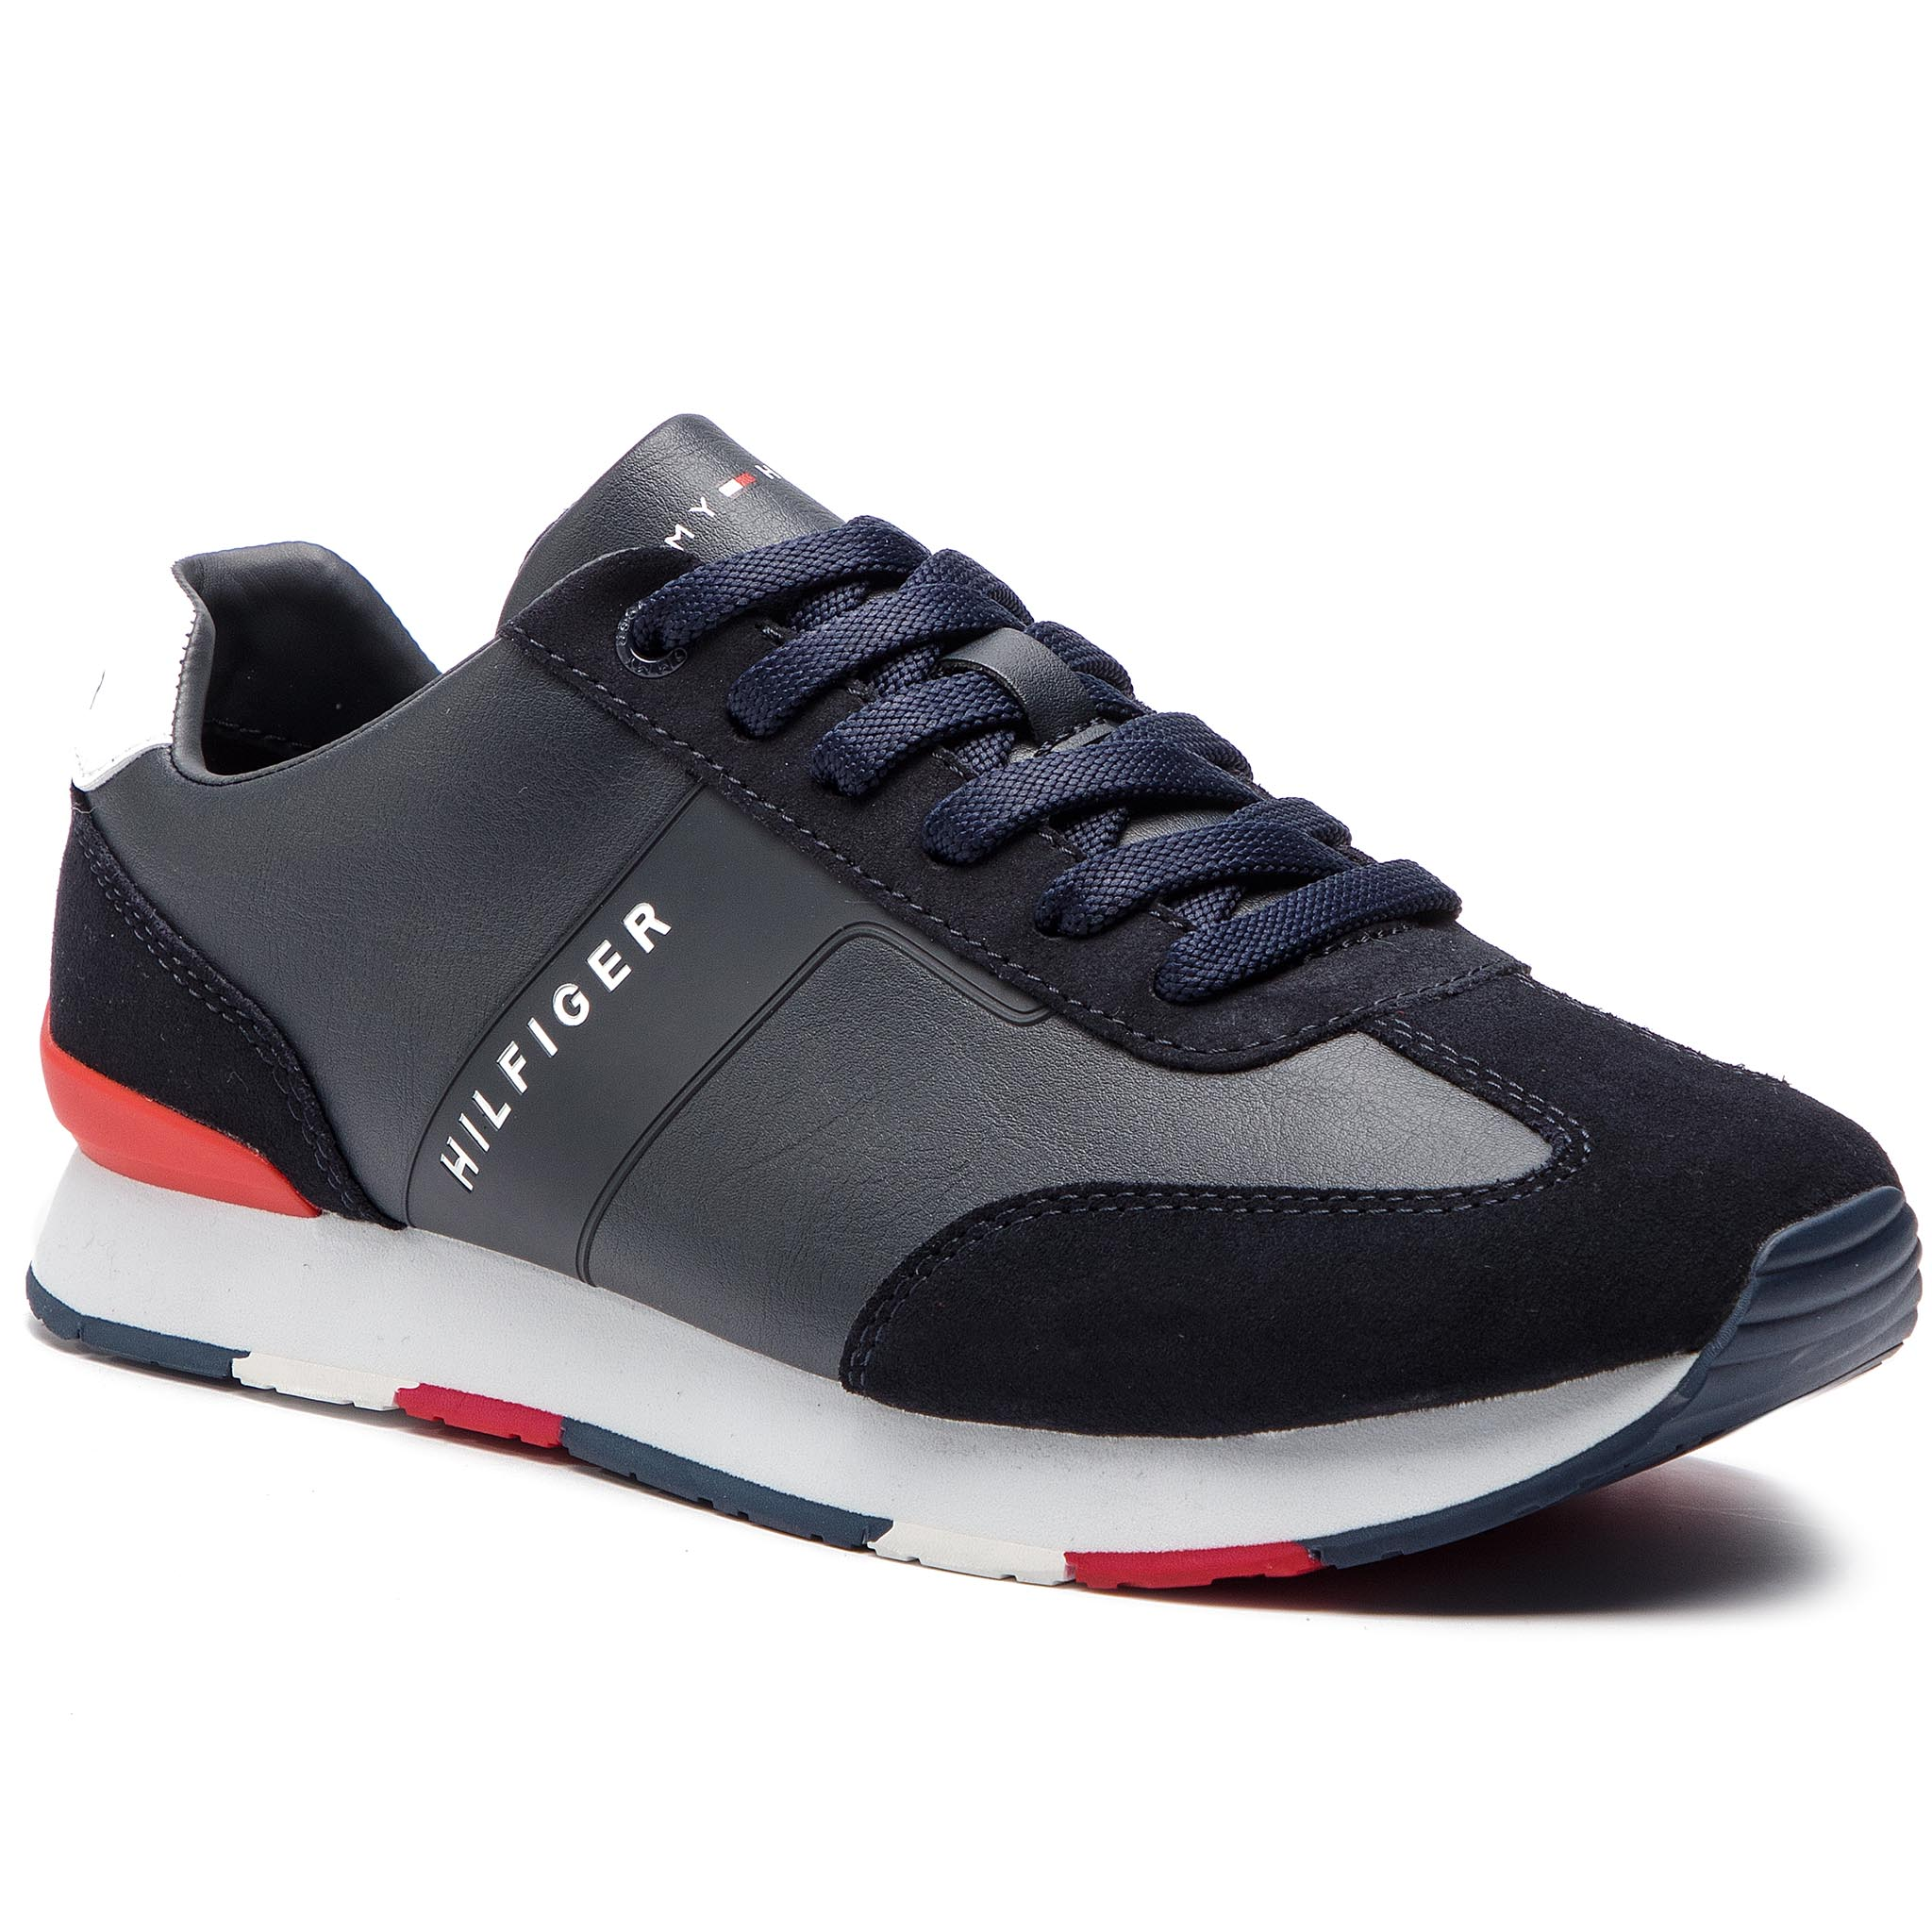 38db9c86 Sneakers TOMMY HILFIGER - Knitted Material Mix Runner FM0FM01956 ...